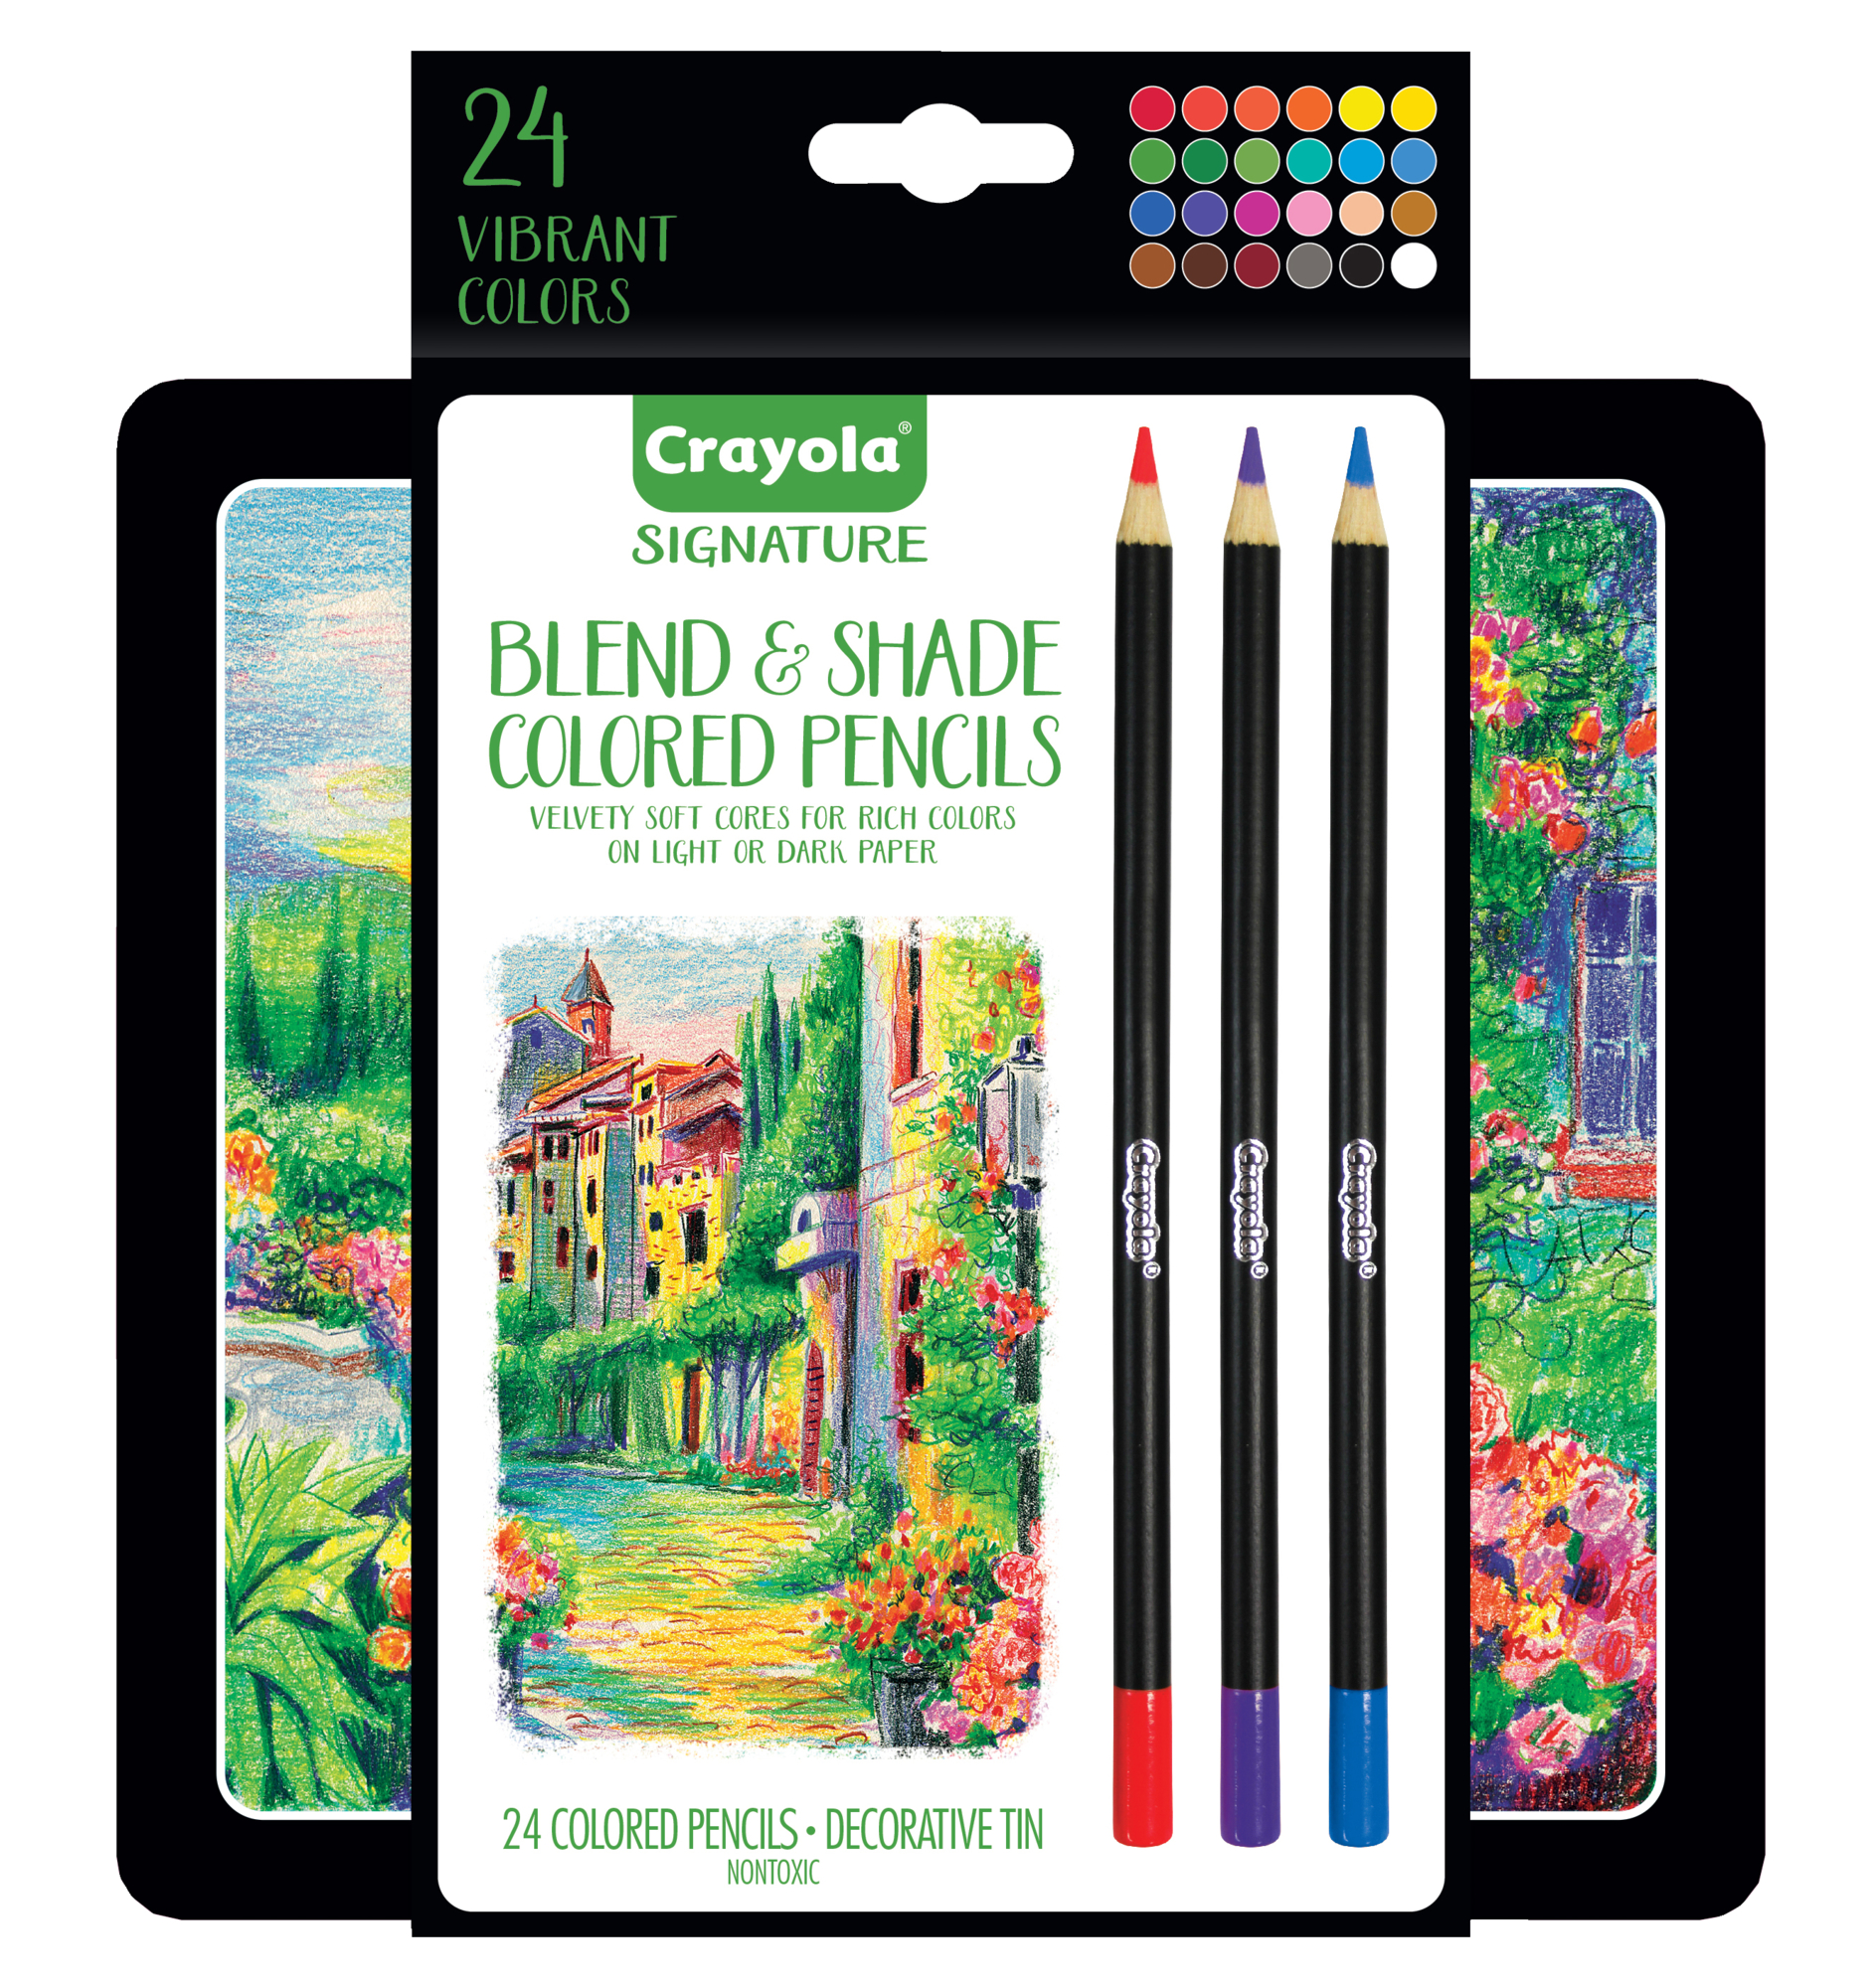 Crayola Signature Blend and Shade Colored Pencils, 24 Count